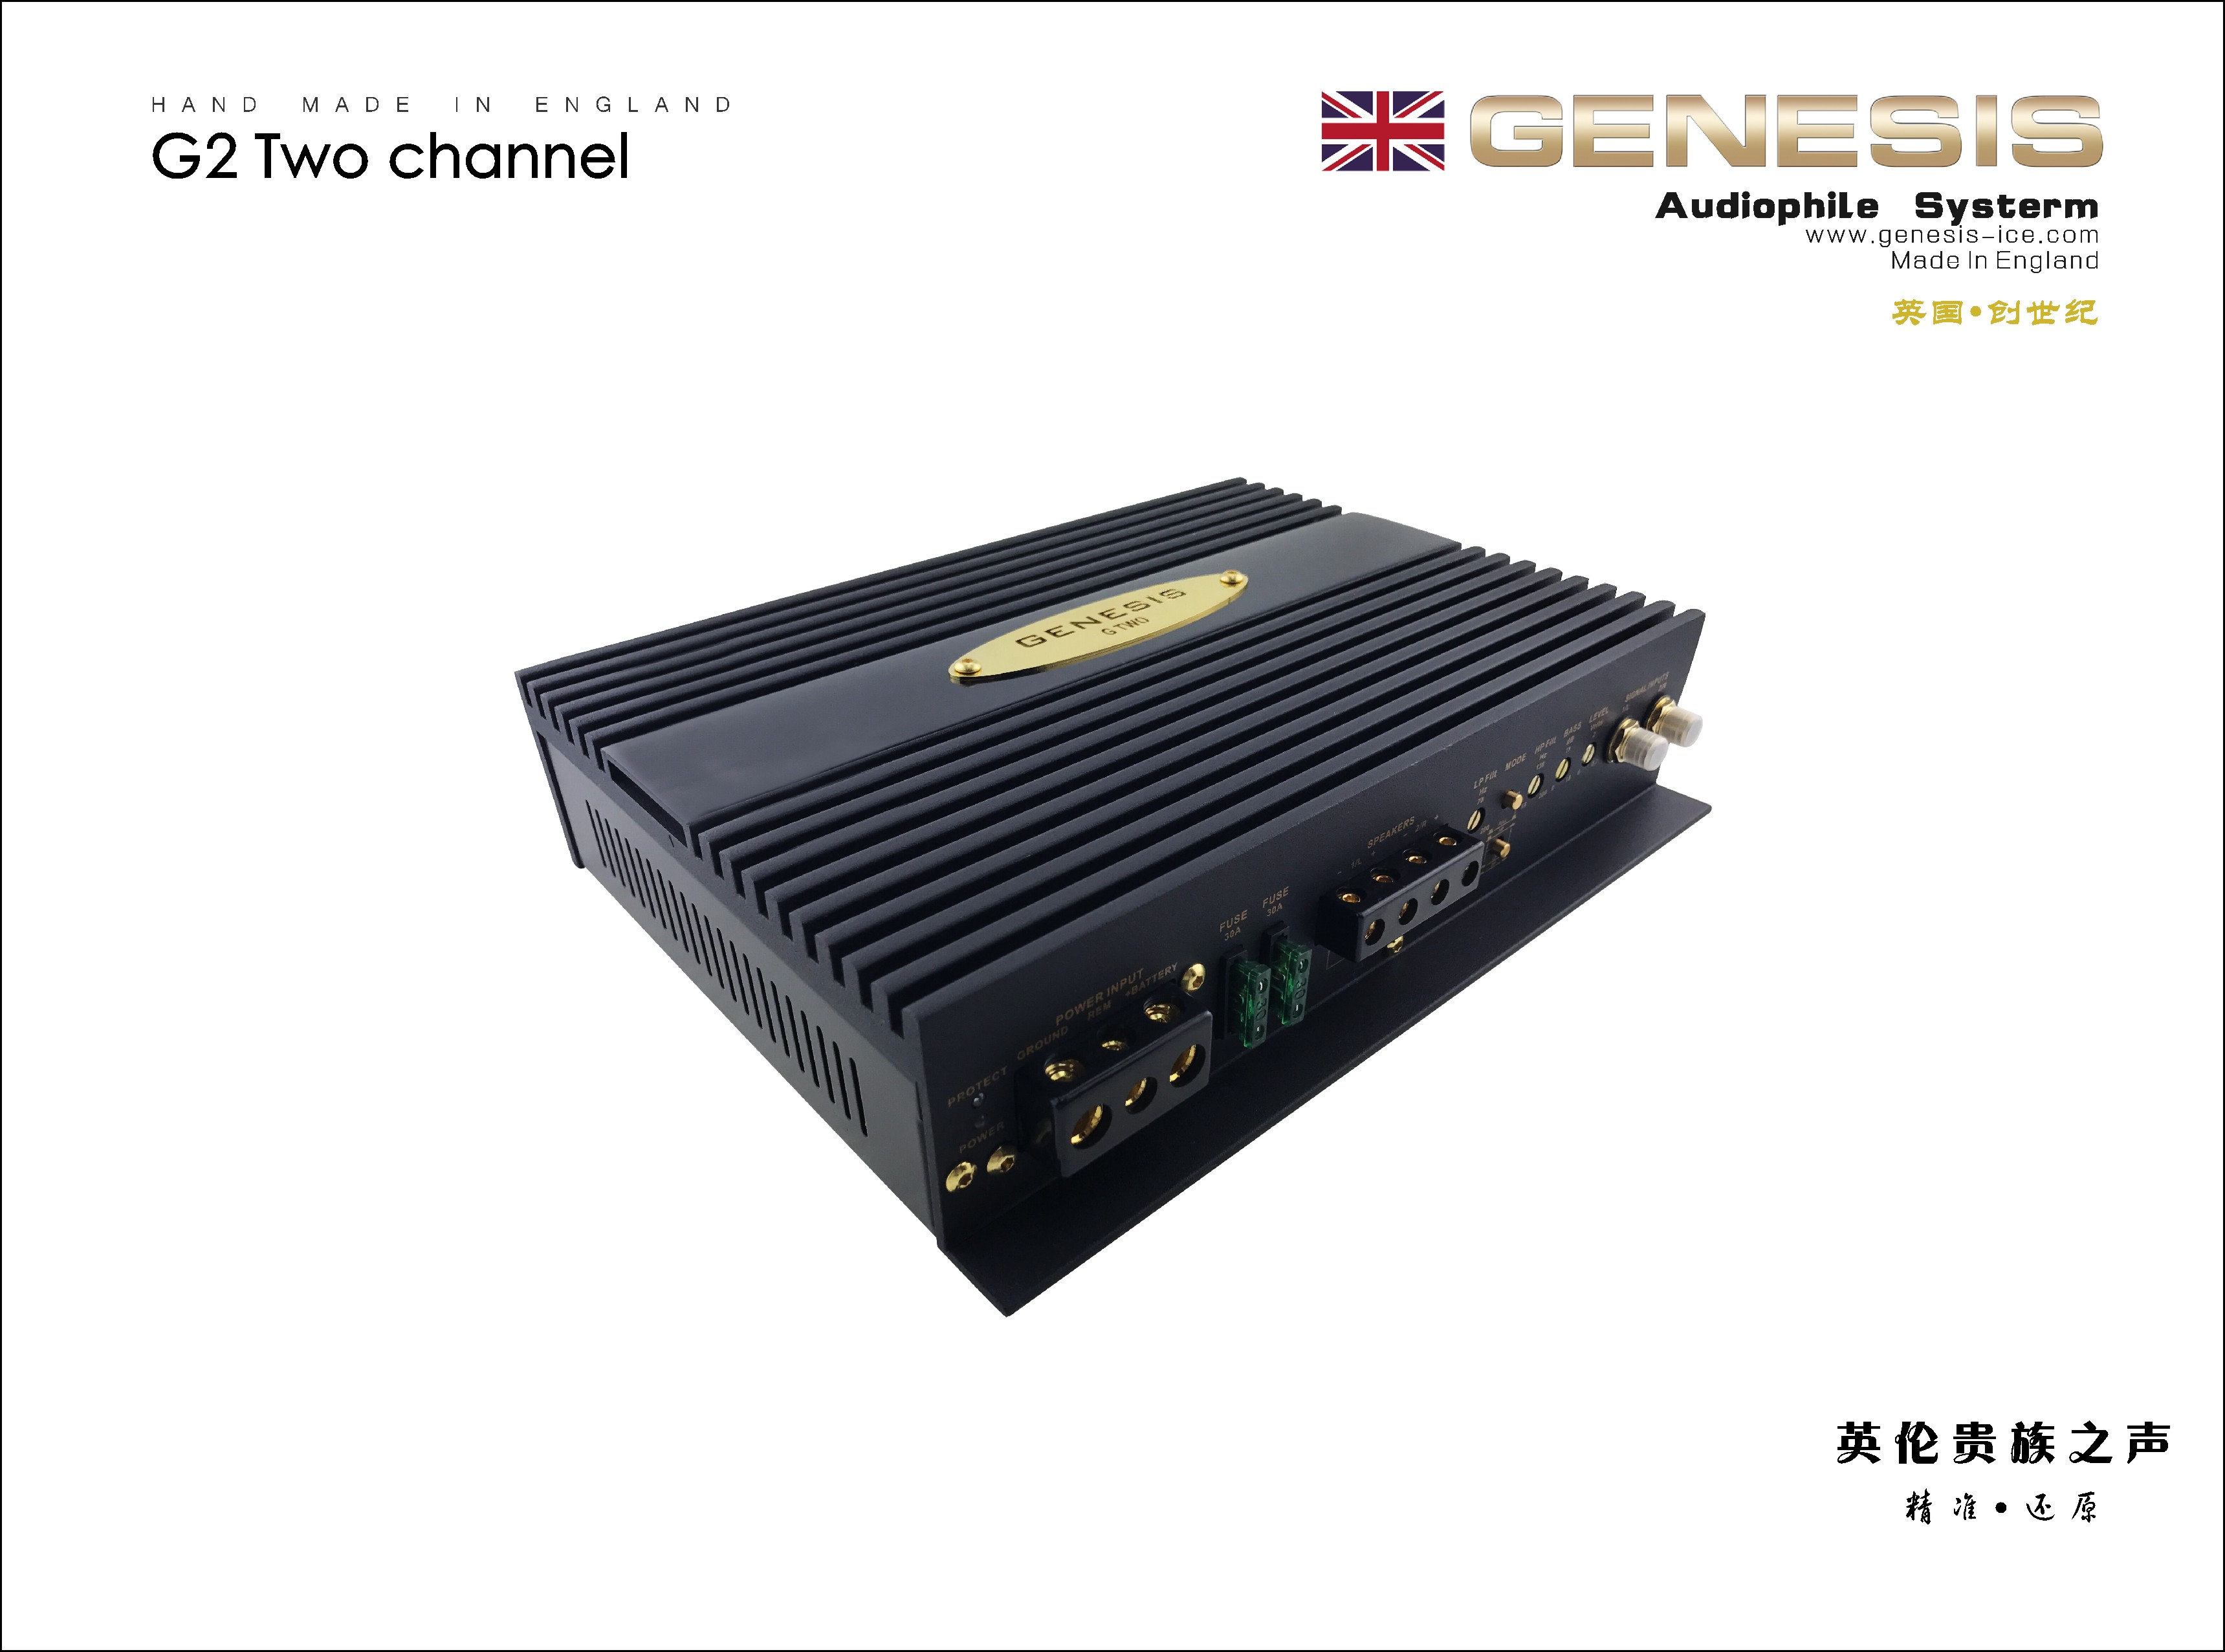 G2 Two channel